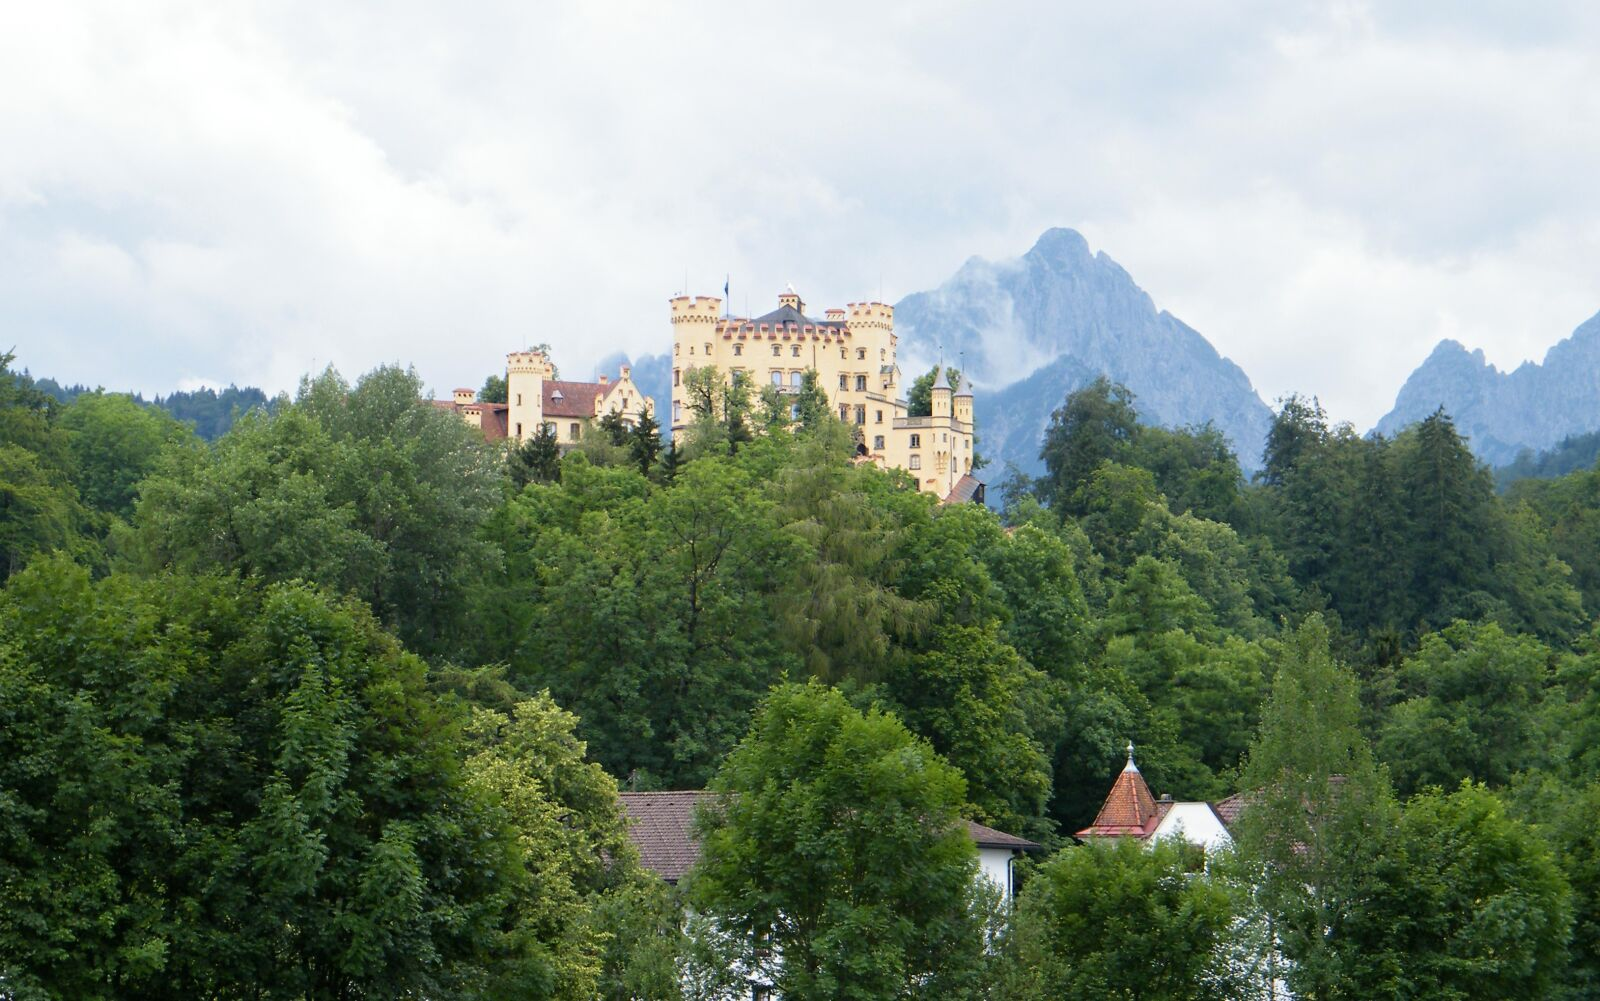 """Fujifilm FinePix S2000HD sample photo. """"Castle, forest, mountains"""" photography"""